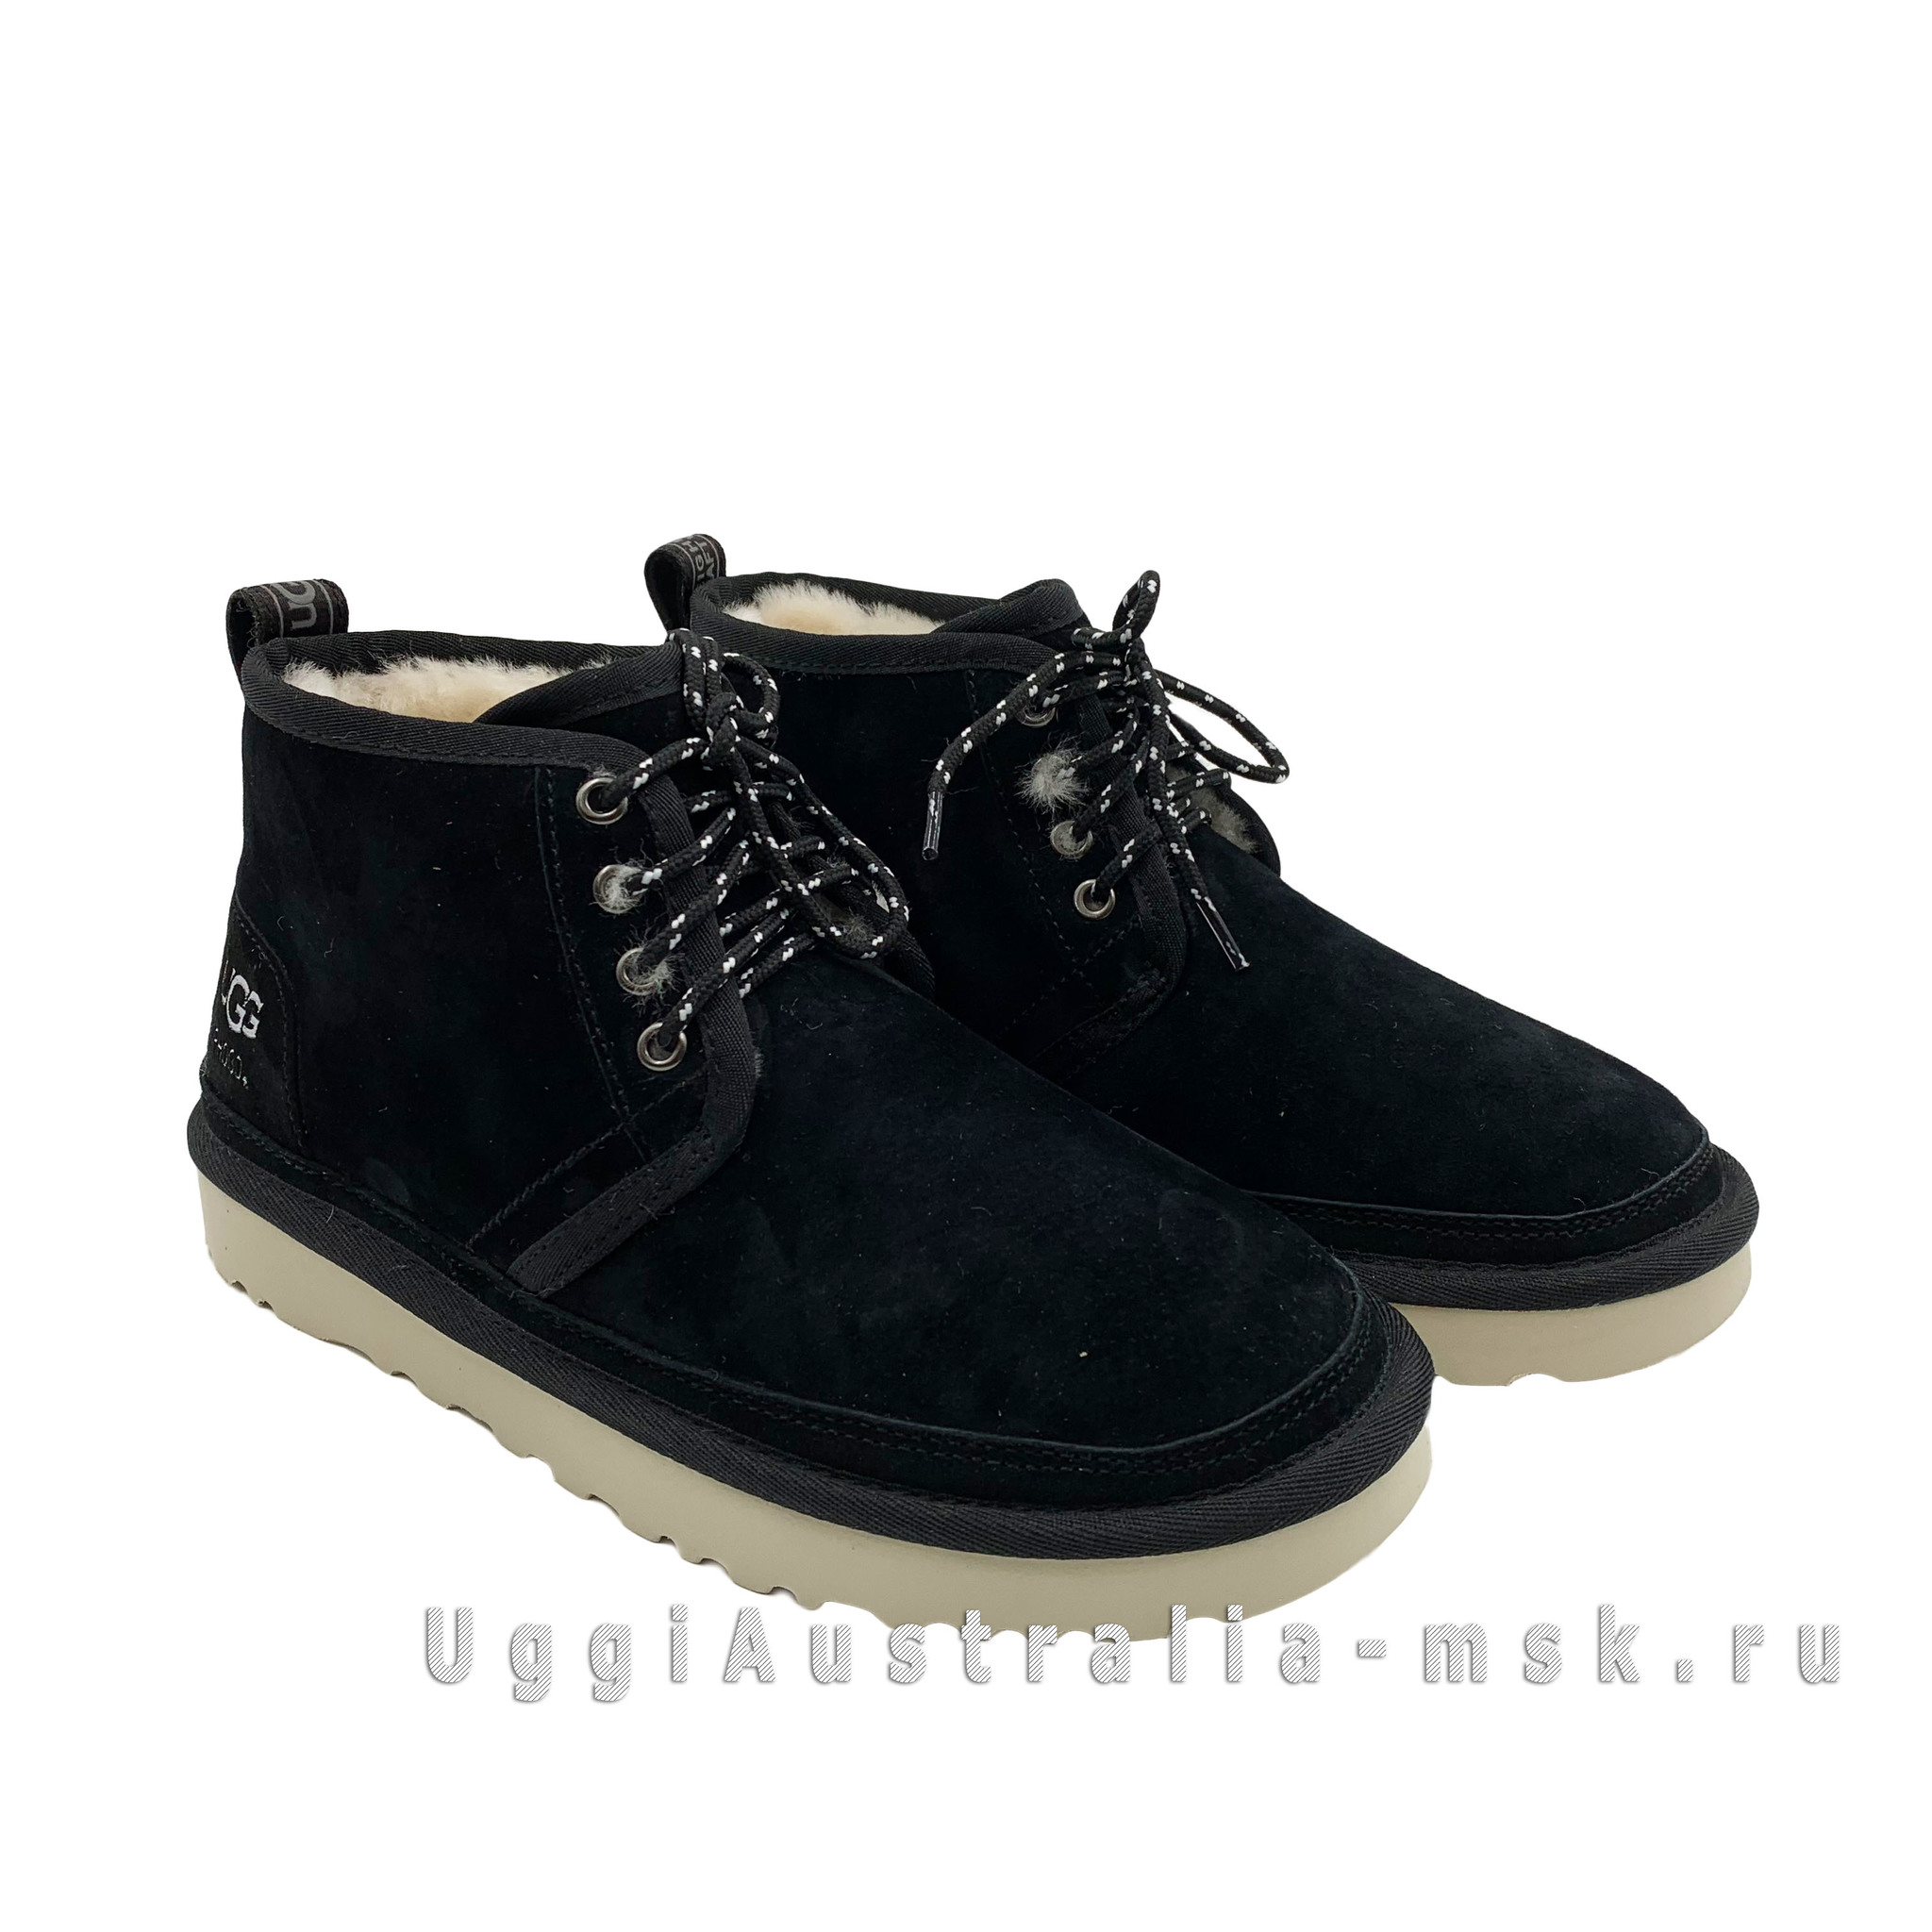 UGG MEN'S X NEIGHBORHOOD NEUMEL